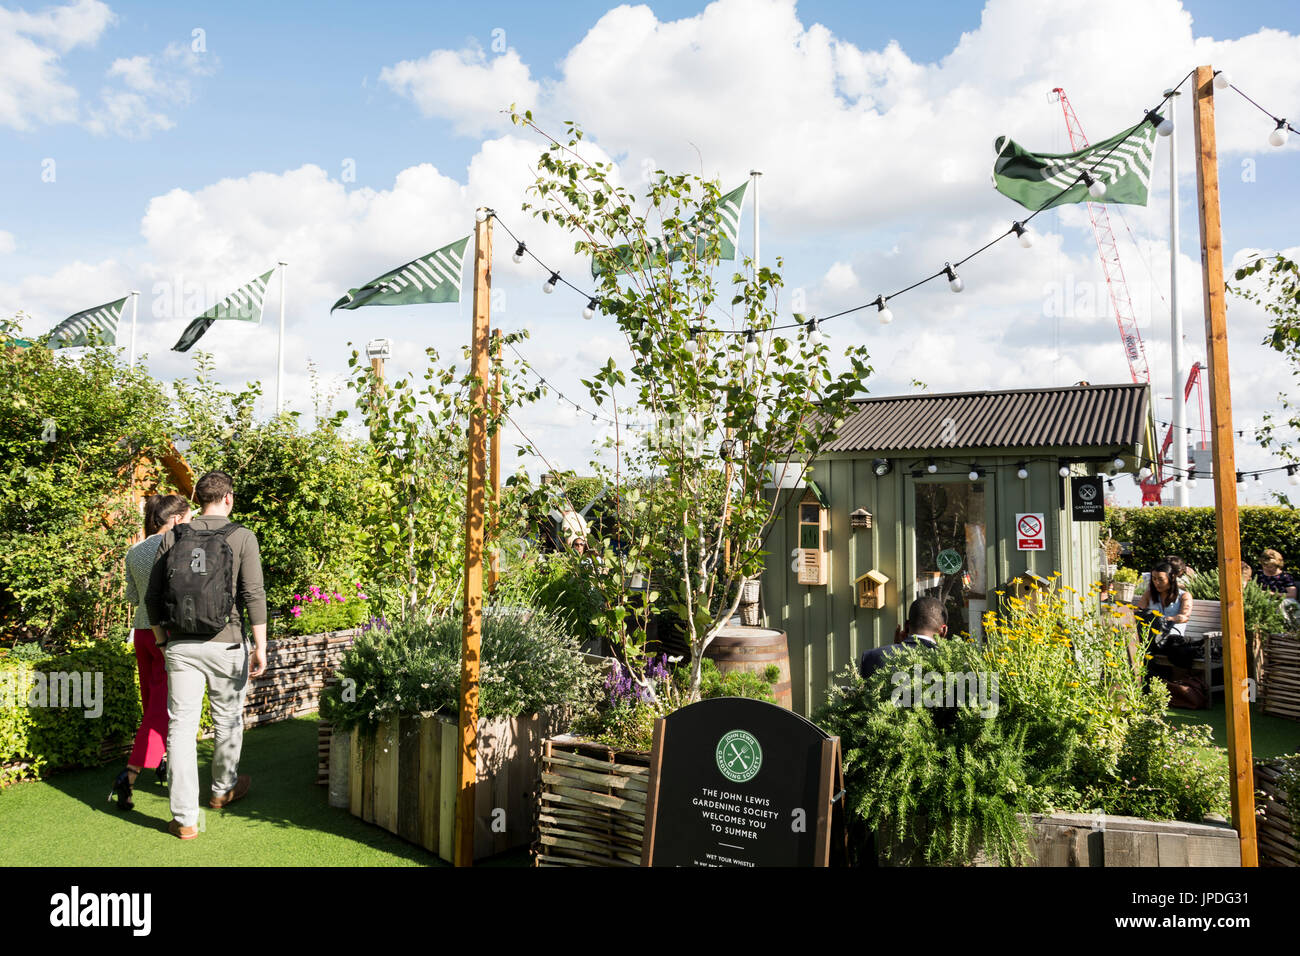 4a2f94b3e6b8 The roof garden at John Lewis on Oxford Street, London, UK Stock ...